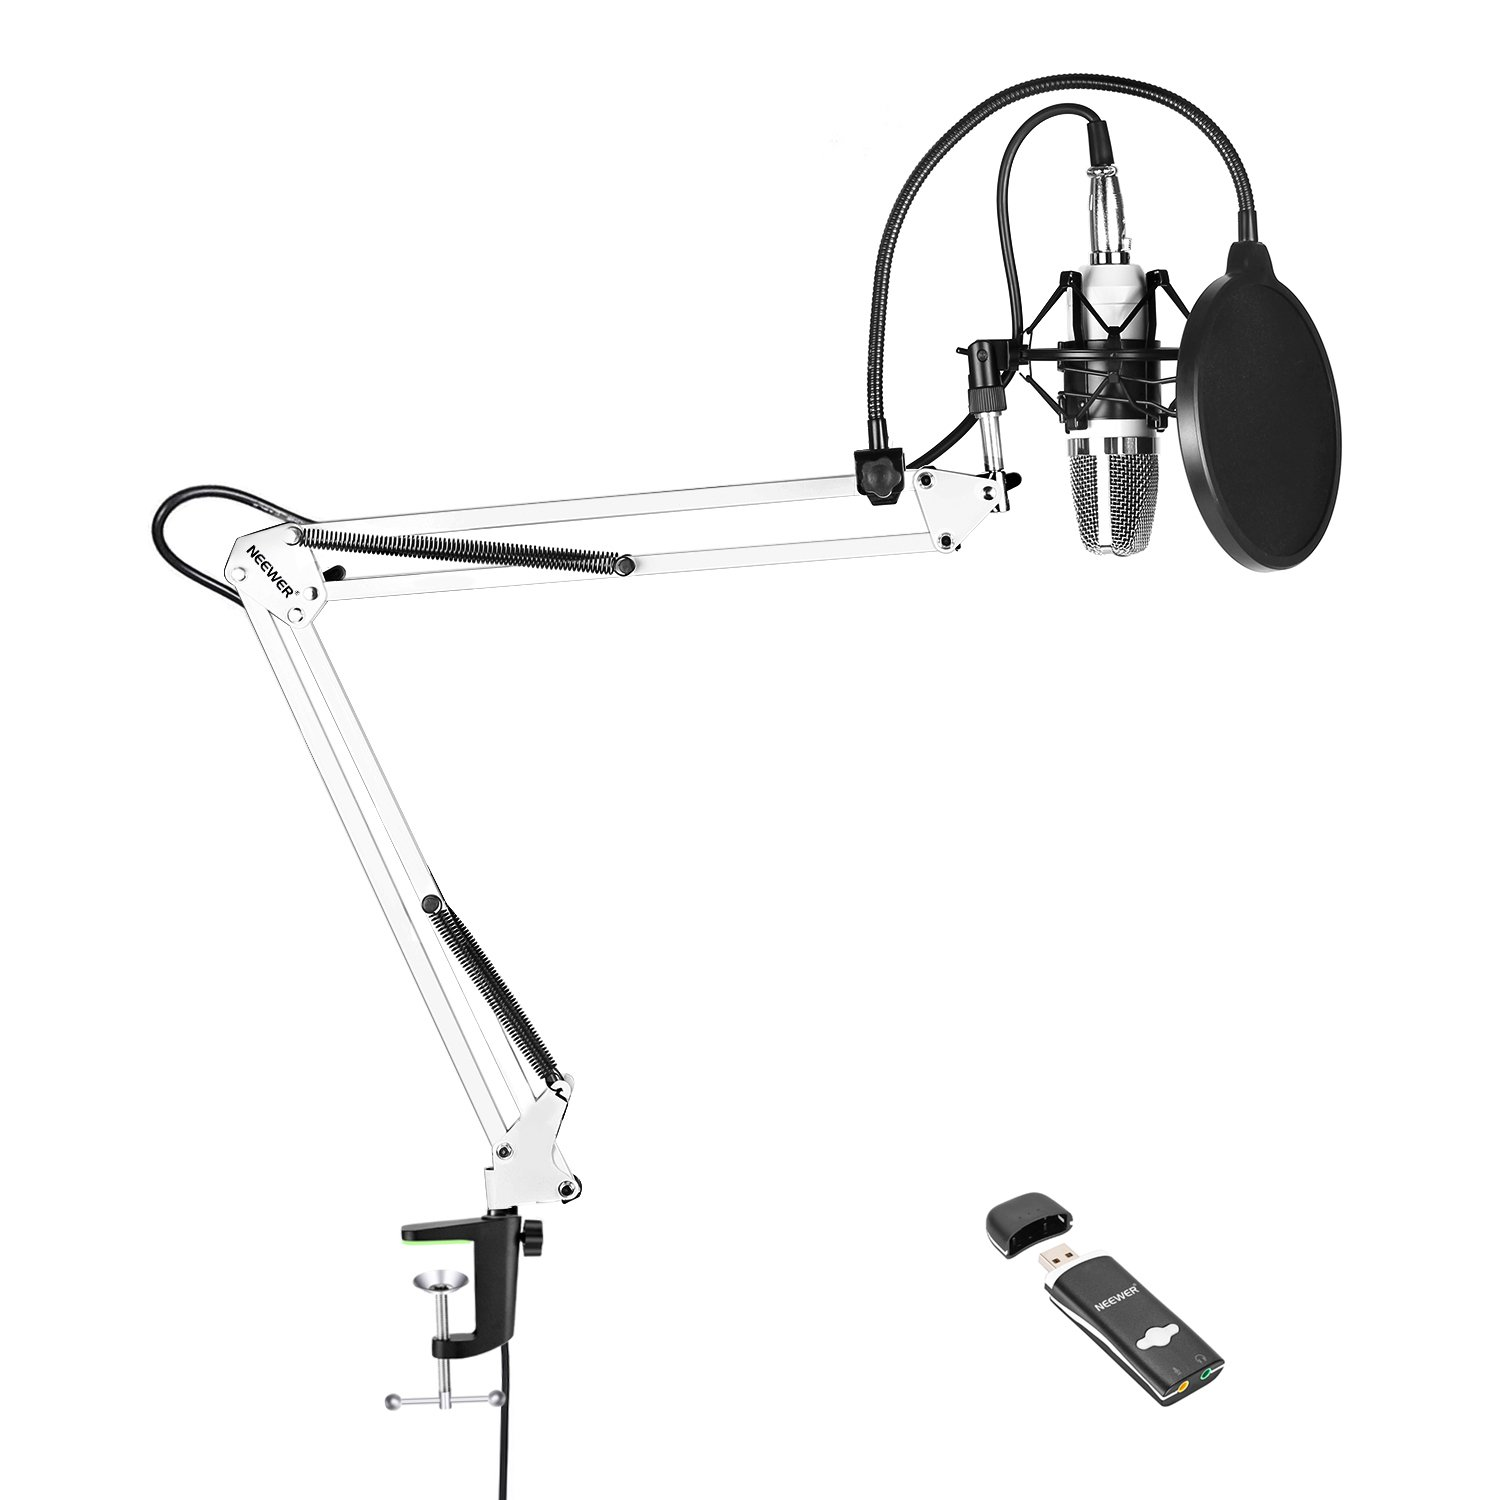 Neewer NW-700 Condenser Microphone Kit for Home Studio Broadcasting Recording - NW-700 Mic, USB Sound Card Adapter, NW-35 Microphone Suspension Scissor Arm Stand with Shock Mount, Pop Filter, Cable 90091160